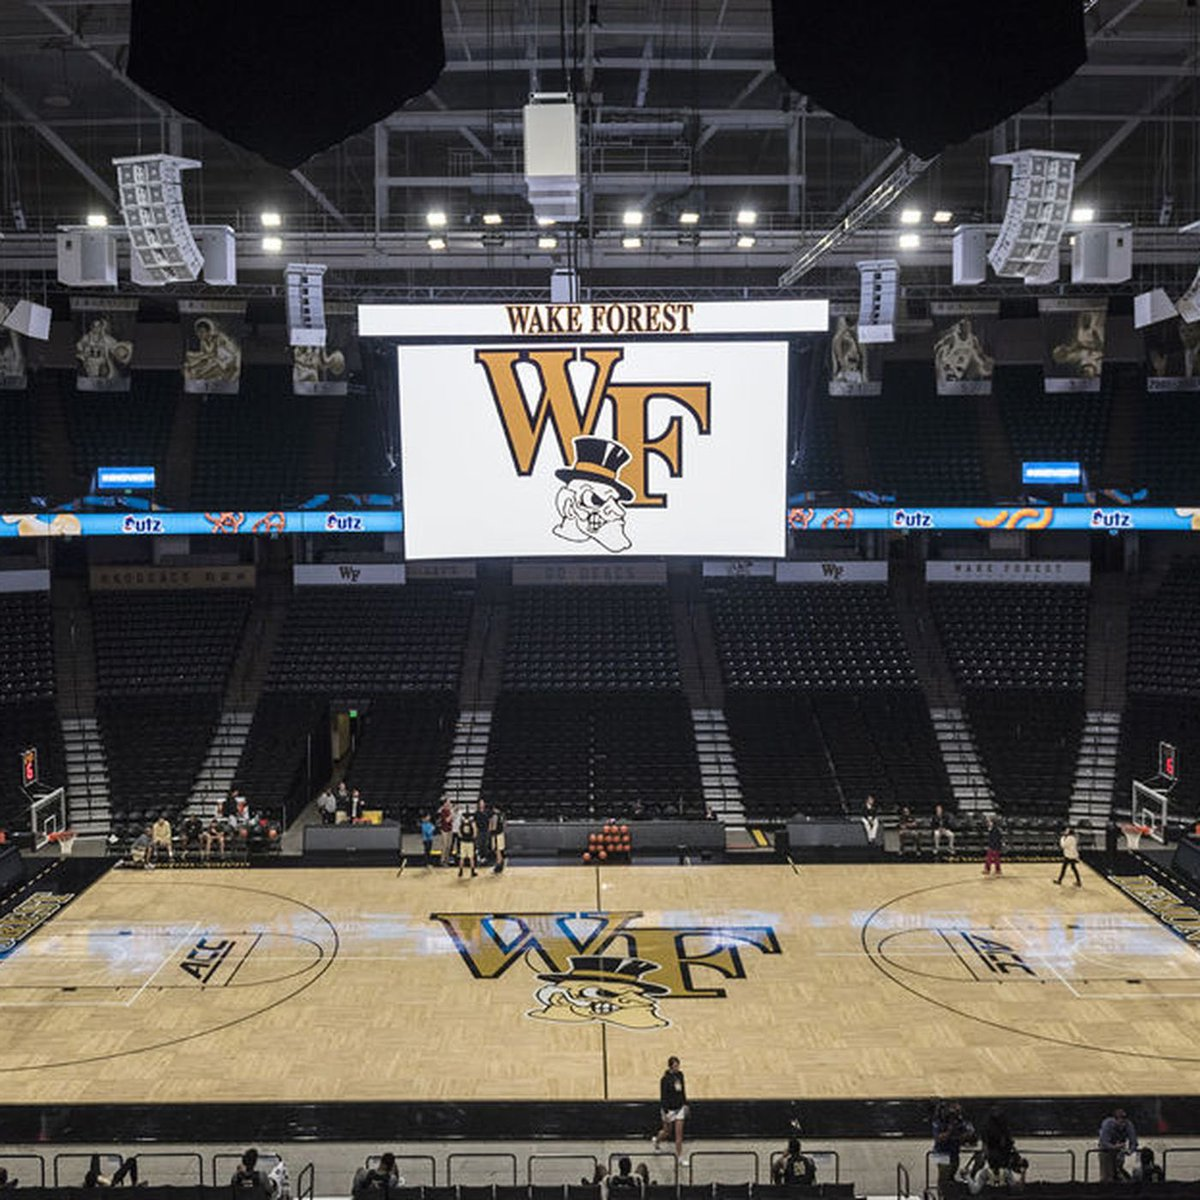 Truly blessed to receive An offer from Wake Forest University🤎 https://t.co/IkjzzFWAxO